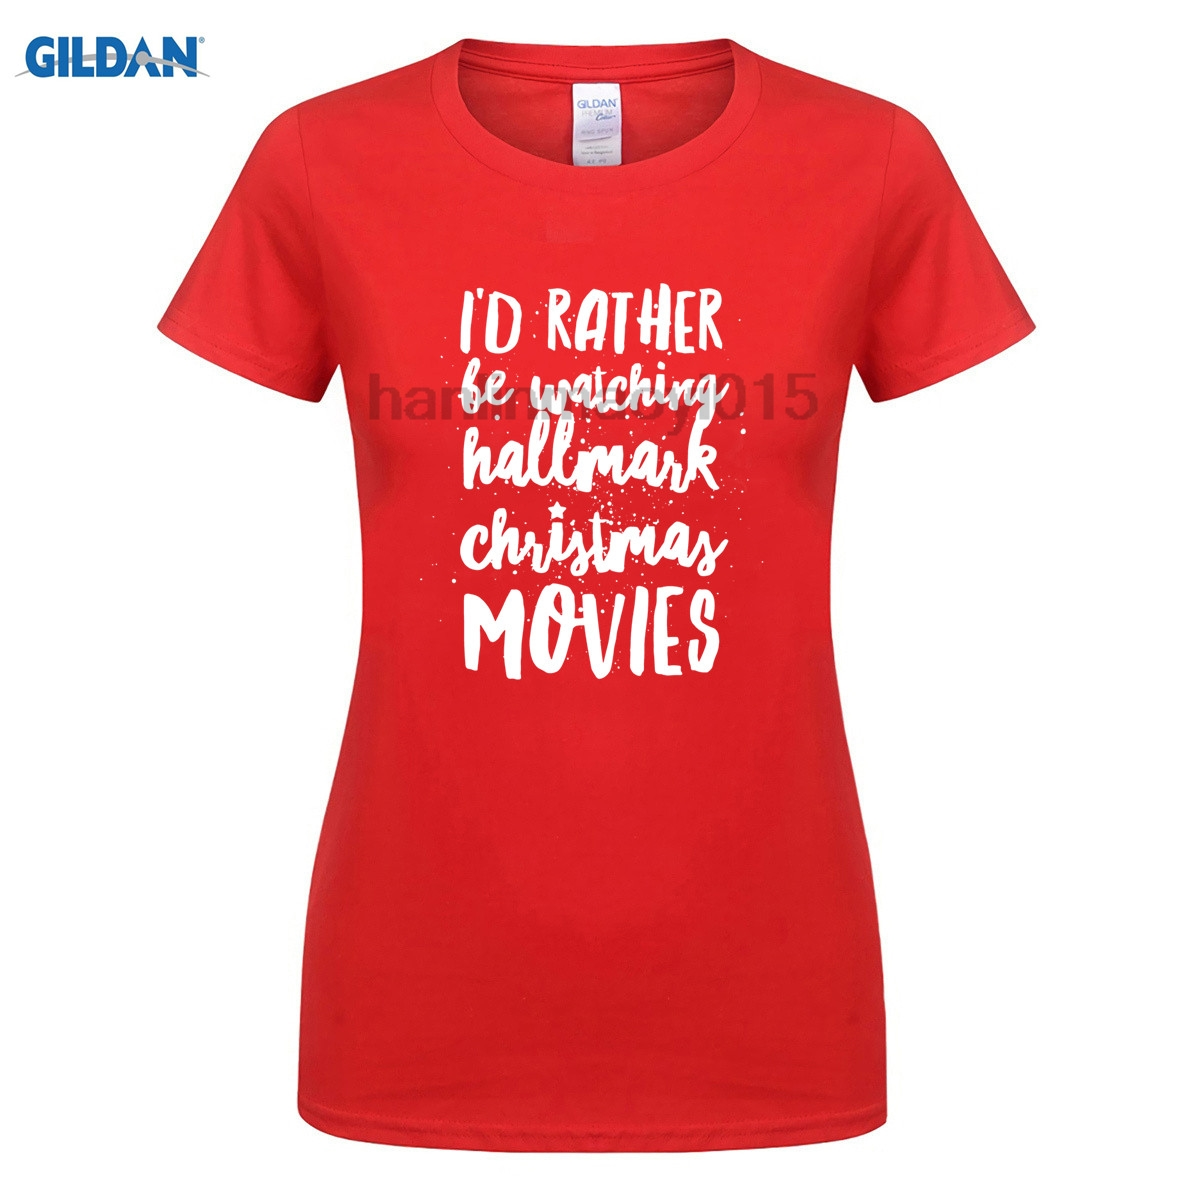 GILDAN 100% cotton O-neck printed T-shirt Hallmark Christmas Movies T-Shirt for women